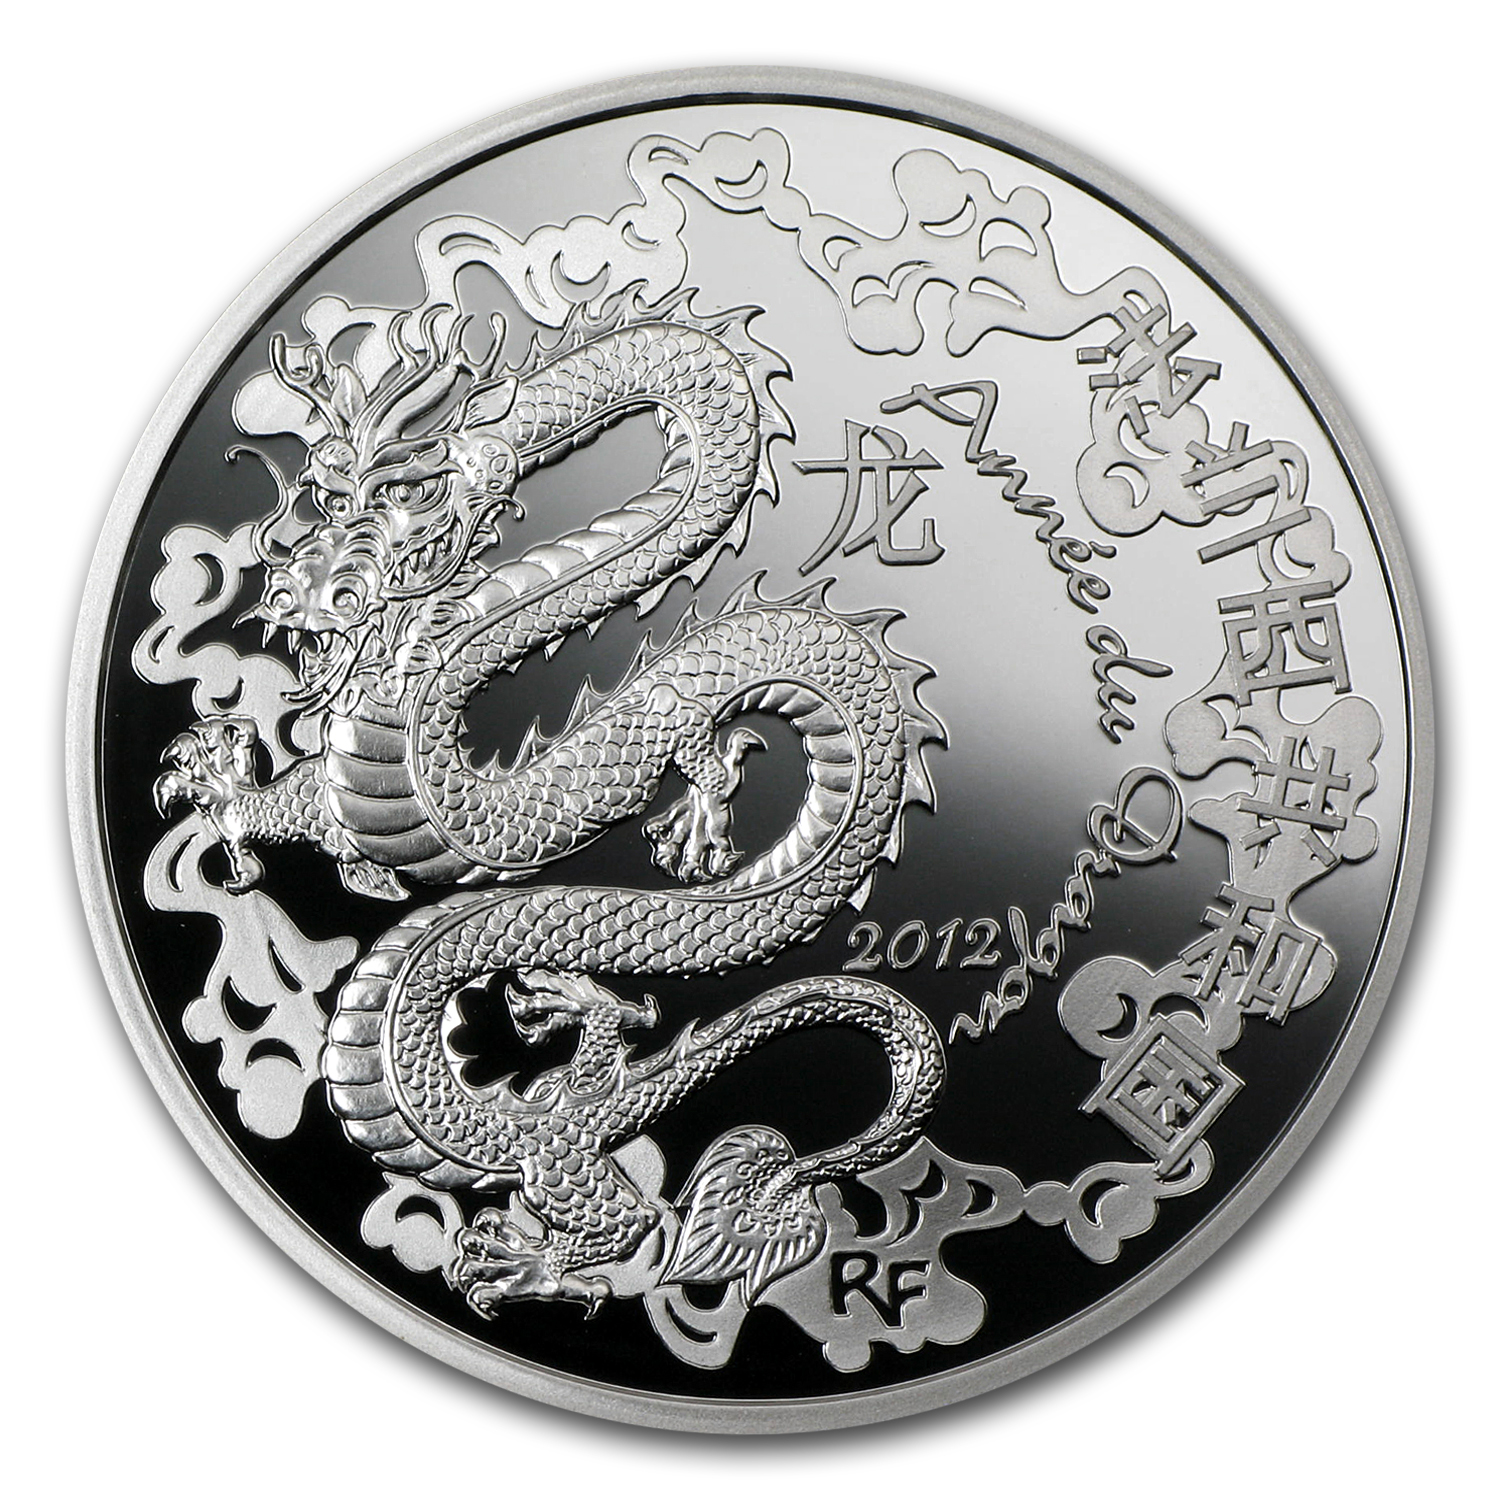 2012 France Silver €10 Year of the Dragon Proof (Lunar Series)